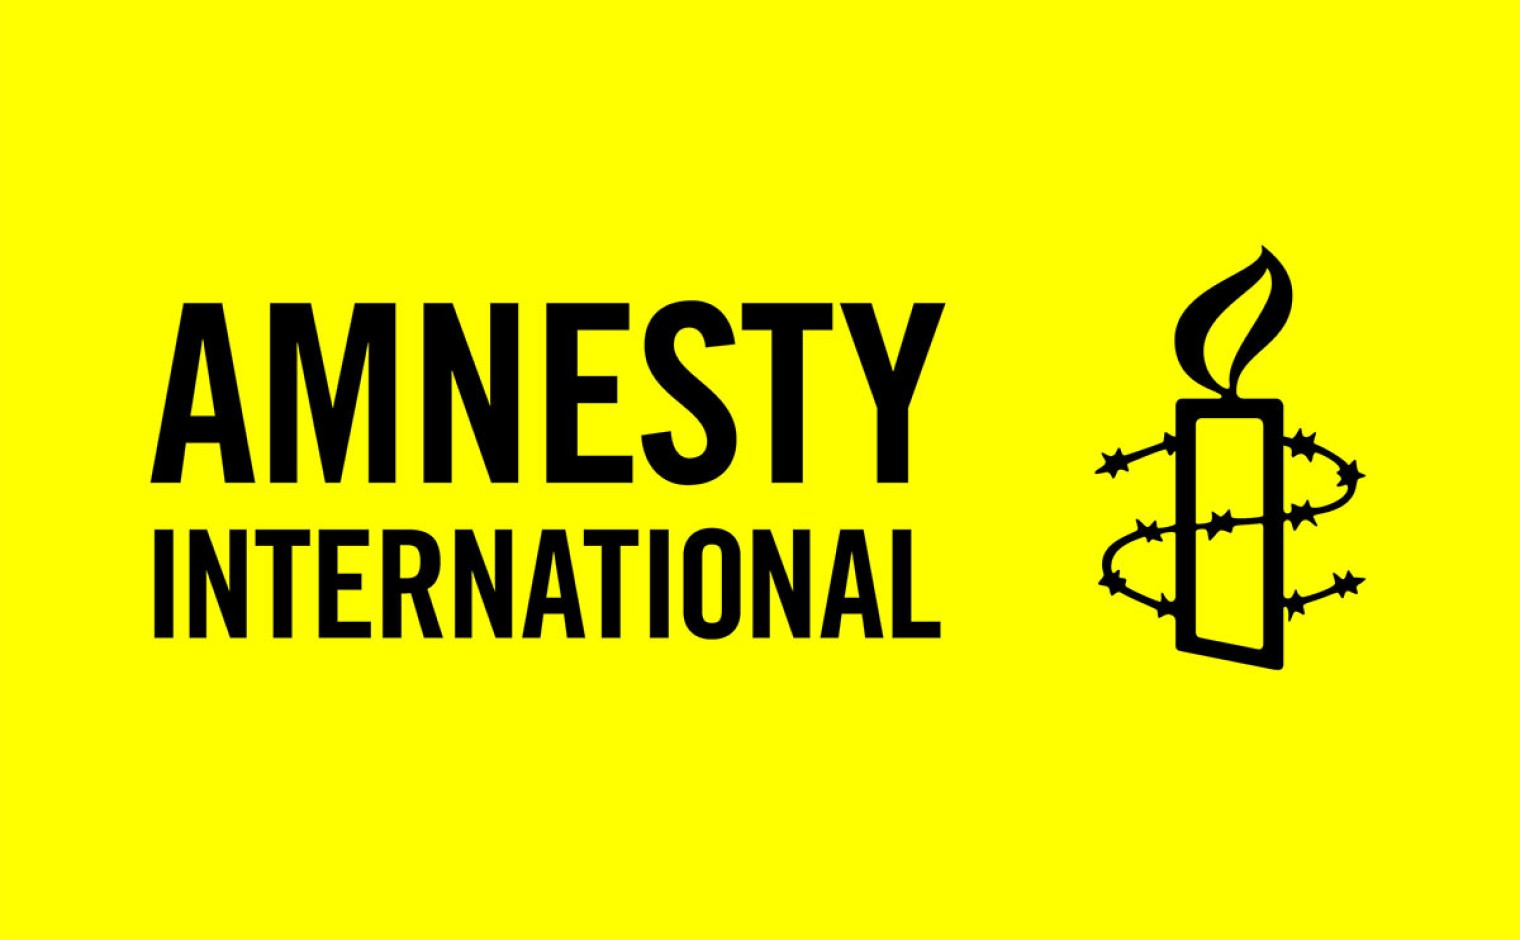 Logo van Amnesty International.